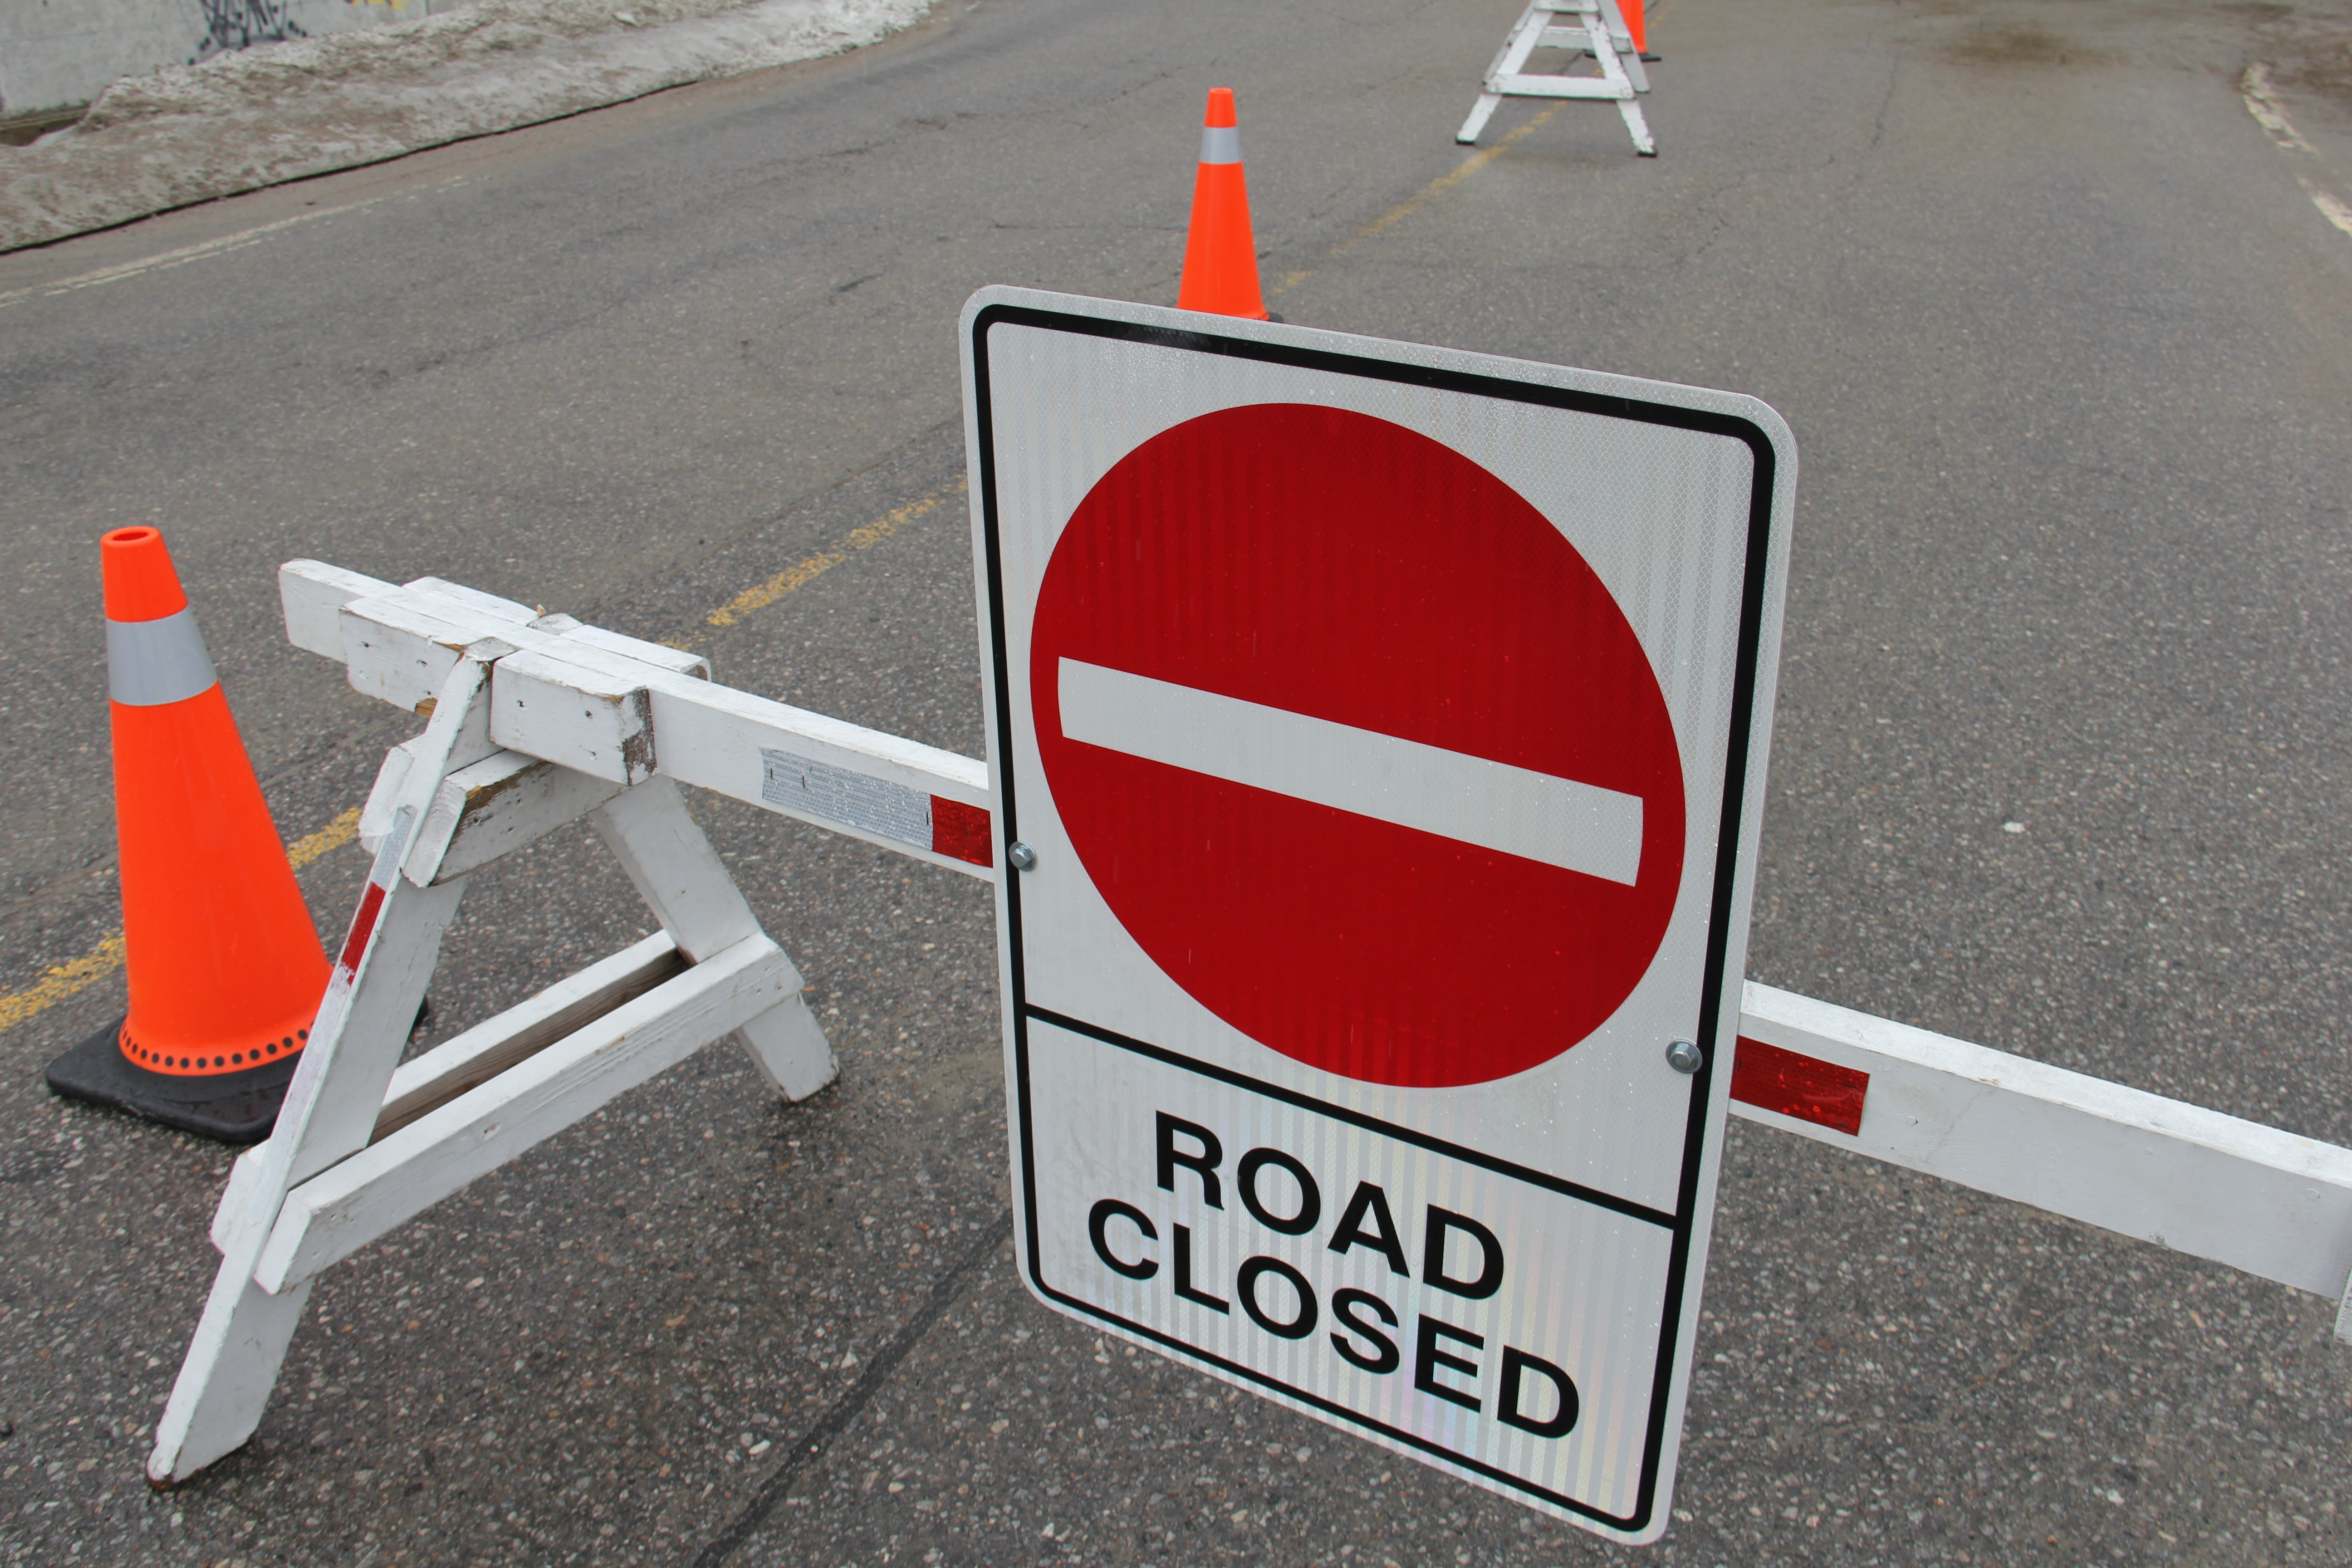 Traffic update water main installation will close part of prete st for most of the month